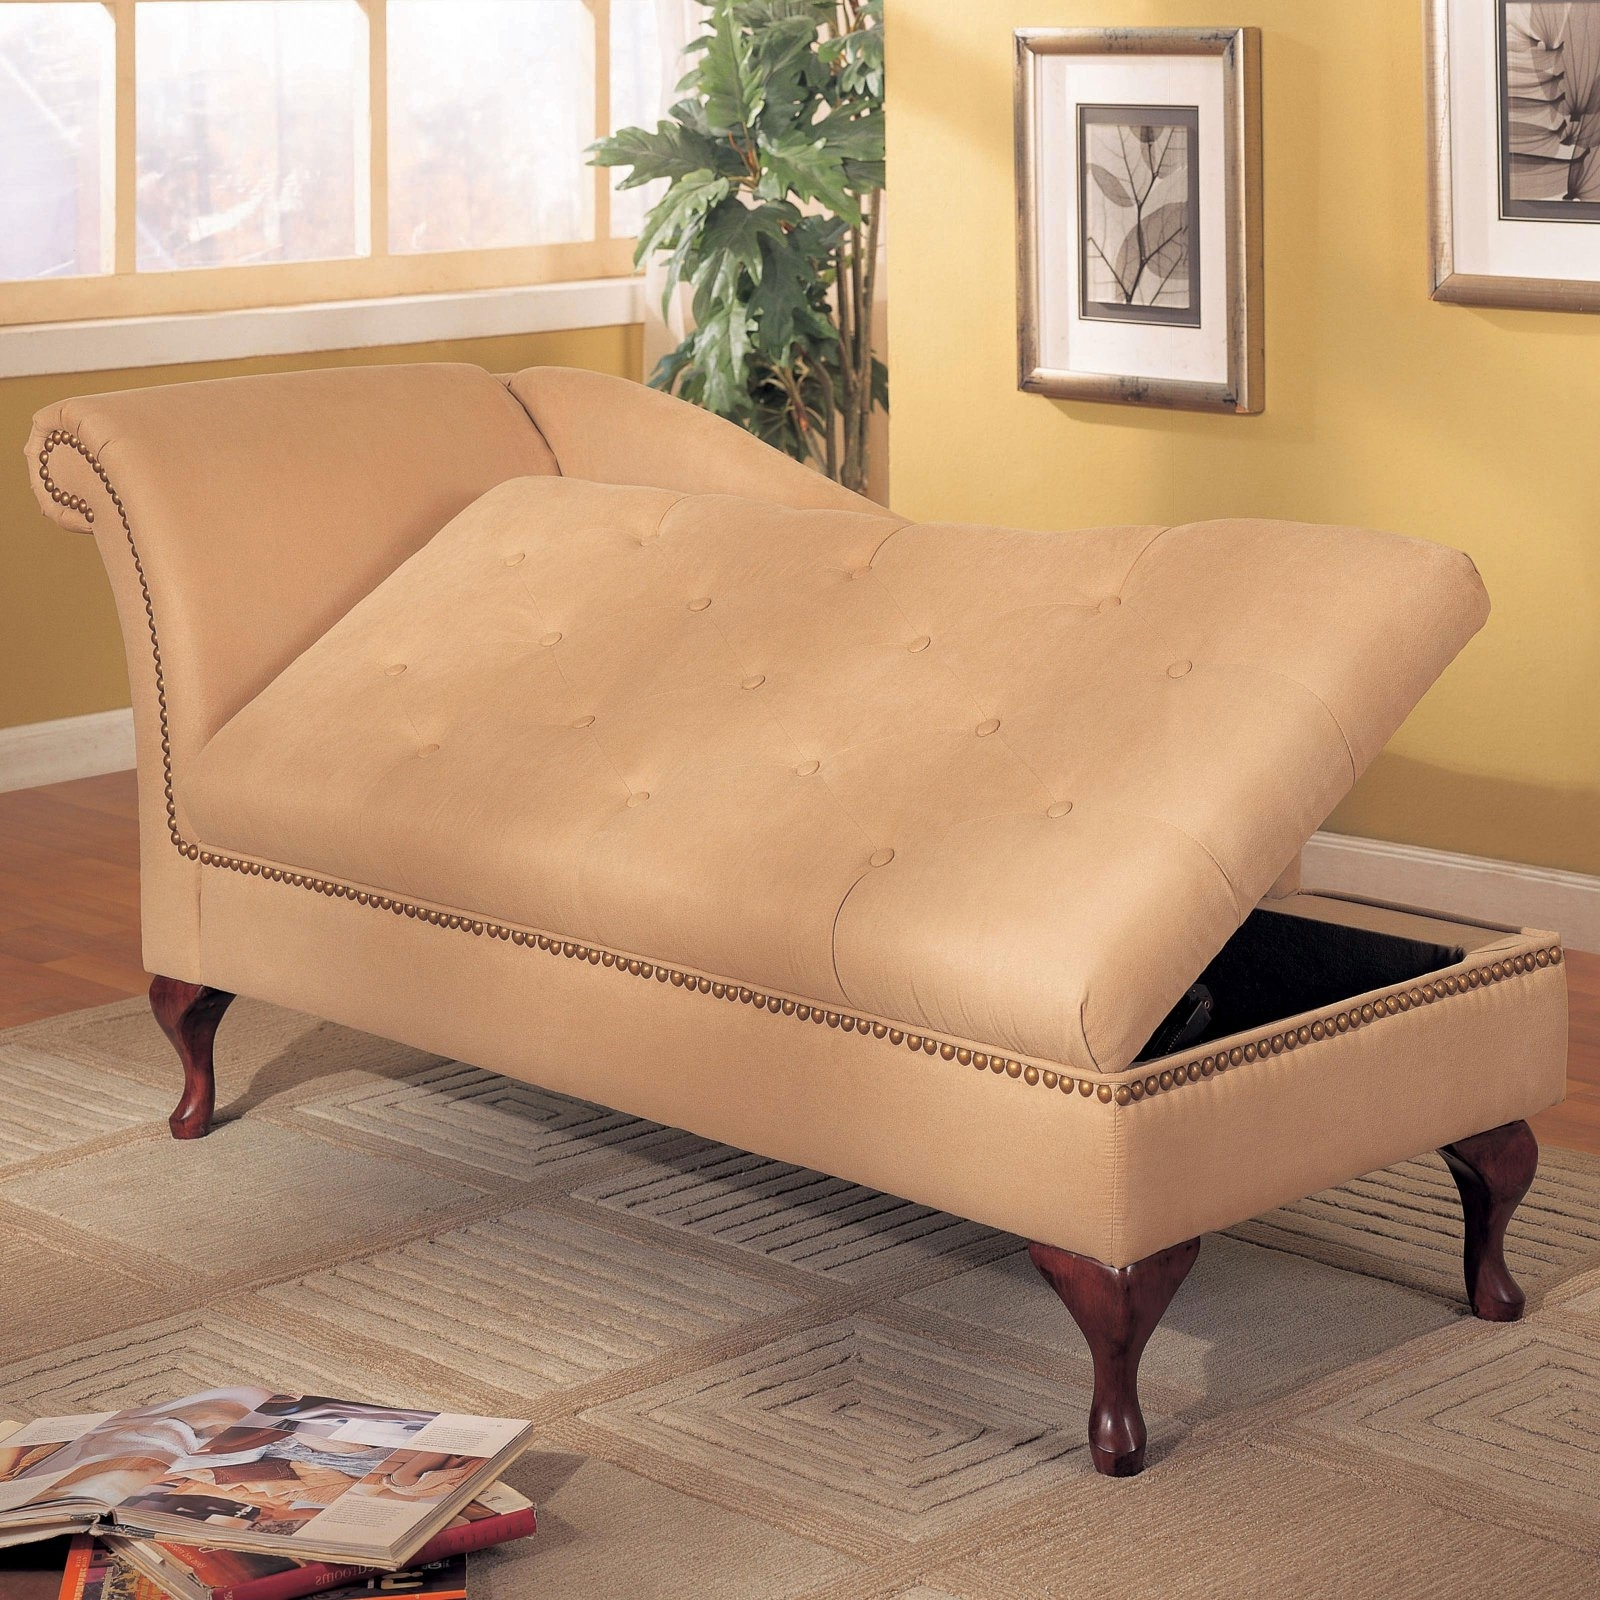 Recent Small Chaise Lounge Chair For Room Awesome Bedroom Chairs Ideas Throughout Chaise Lounge Chairs For Bedroom (View 7 of 15)